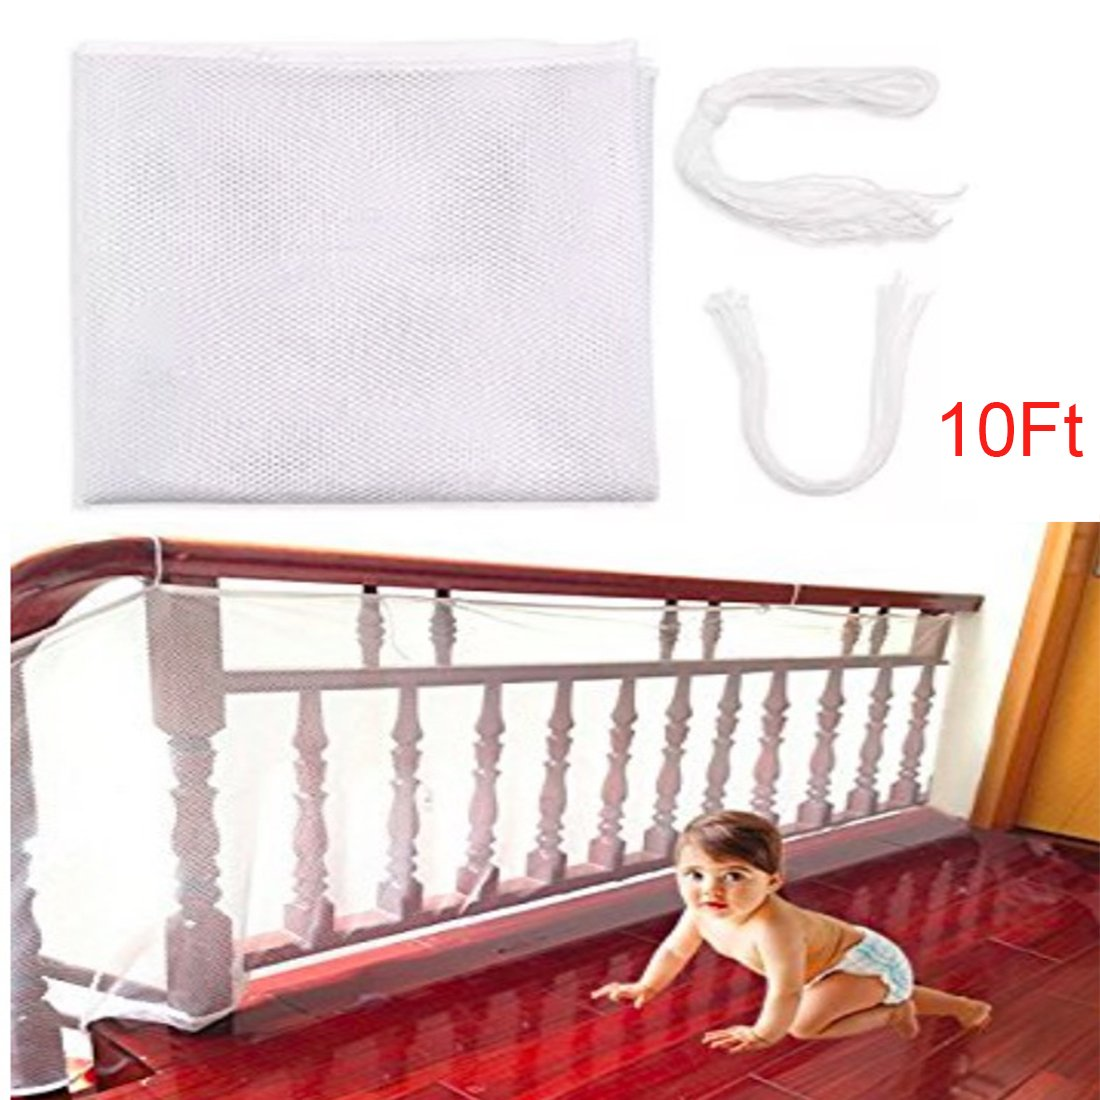 Roving Cove Child Safe Rail Net Indoor Balcony Stairway Safety Net Banister Stair Net Outdoor Usage Decks Child Safety Pet SafetyToy Safety Banister Stairs Protector (10Ft)